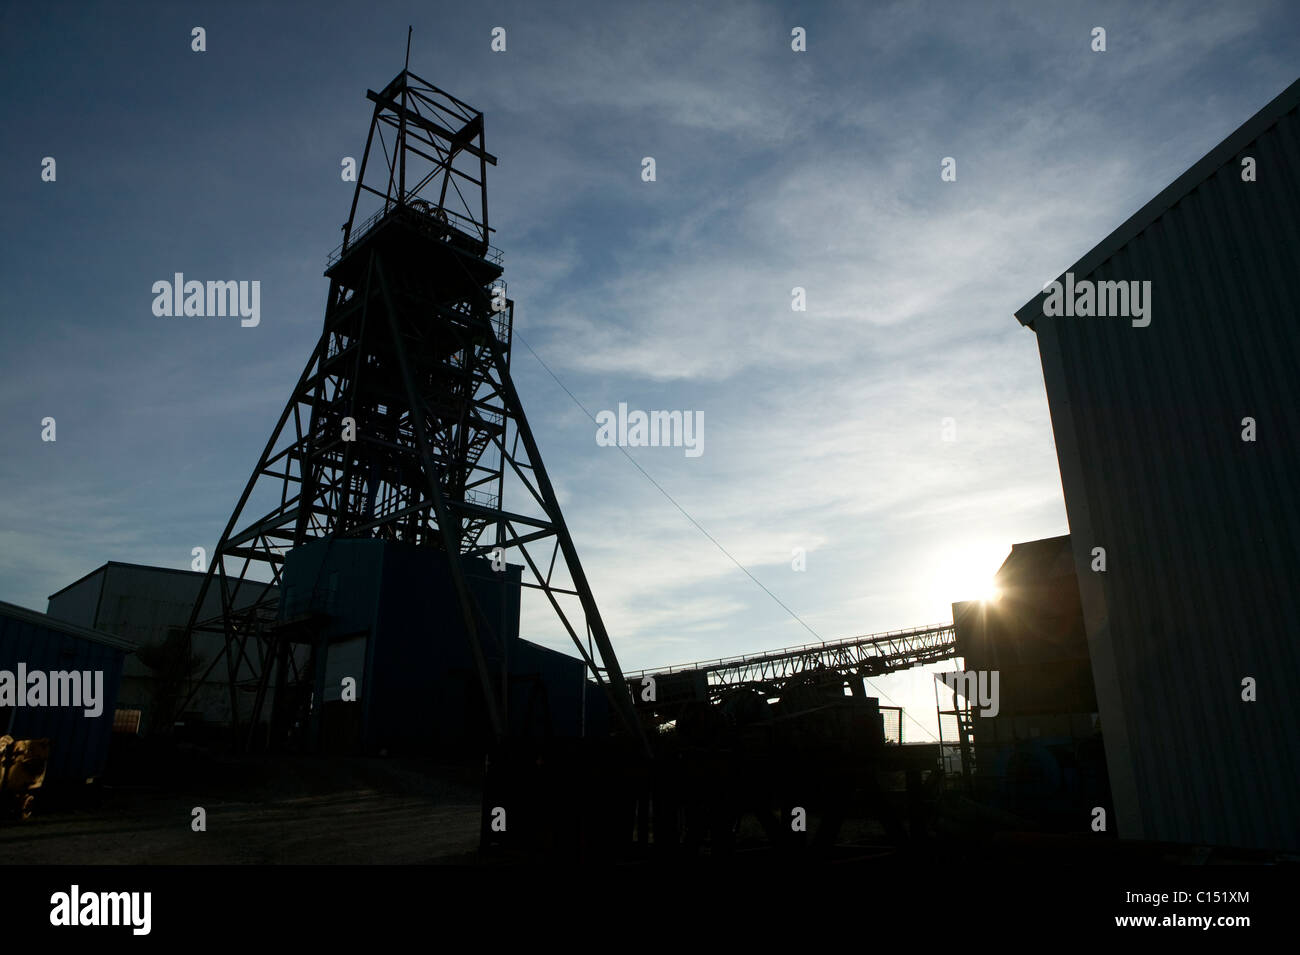 South Crofty Mine Immagini   South Crofty Mine Fotos Stock - Alamy 3ed1764b5894